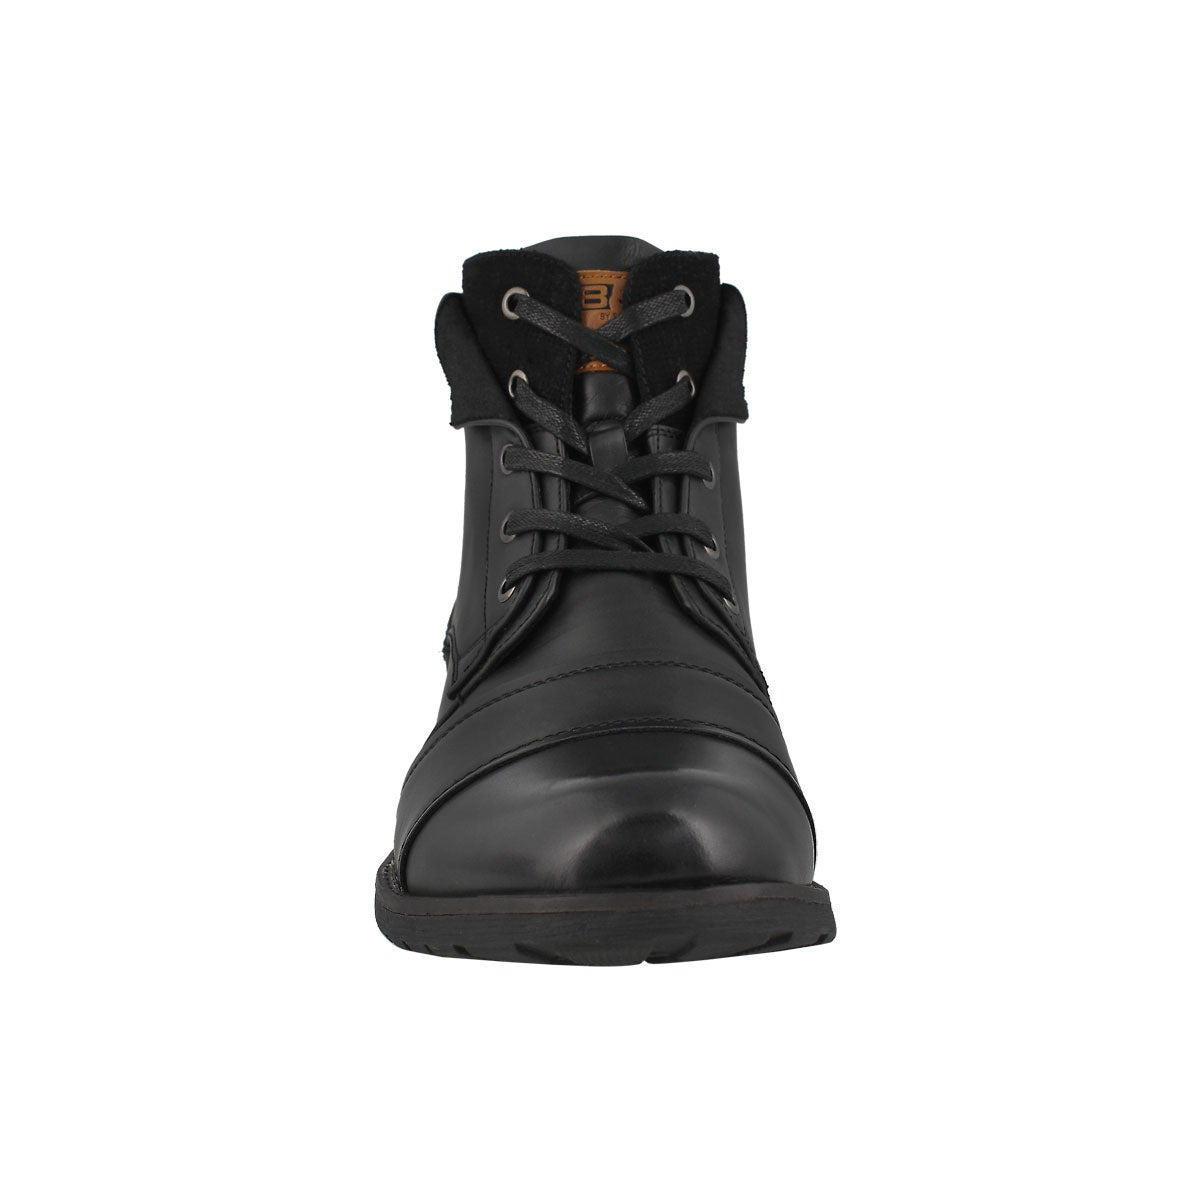 Mns Baker black lace up ankle boot